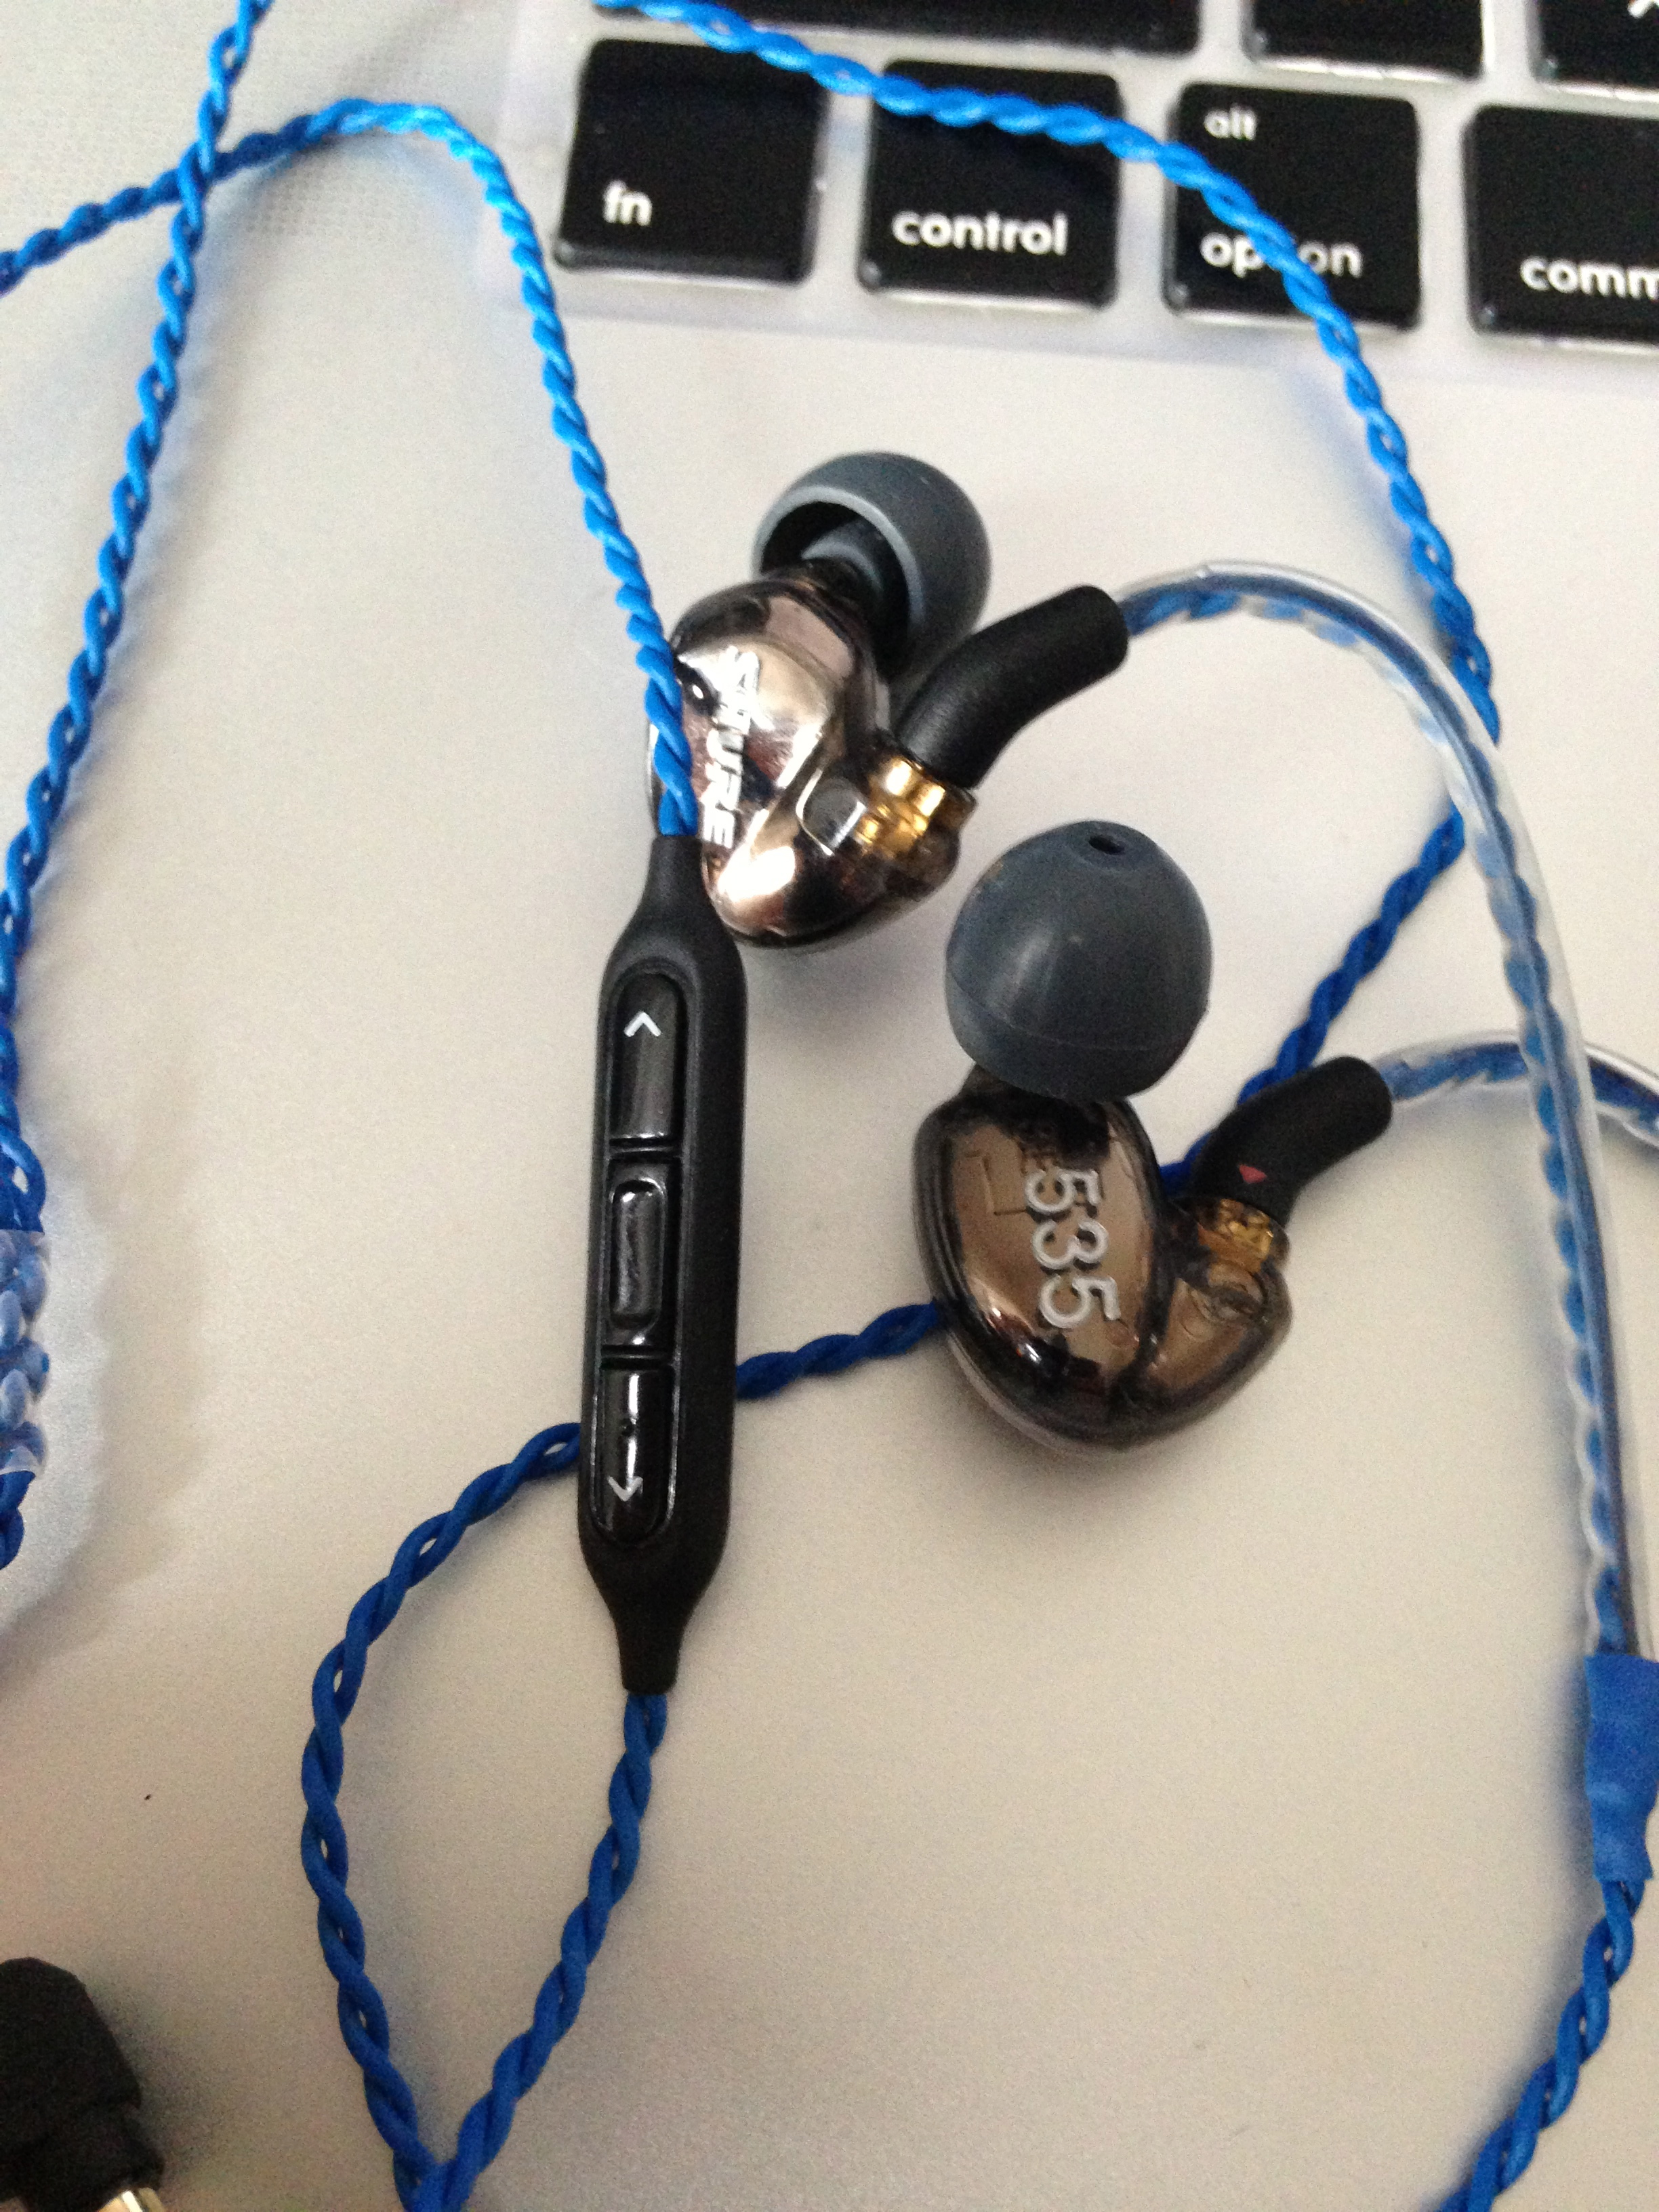 Kick But Cheap Shure Se Cable Upgrade Headphone Reviews And Replacement Parts Img 0523